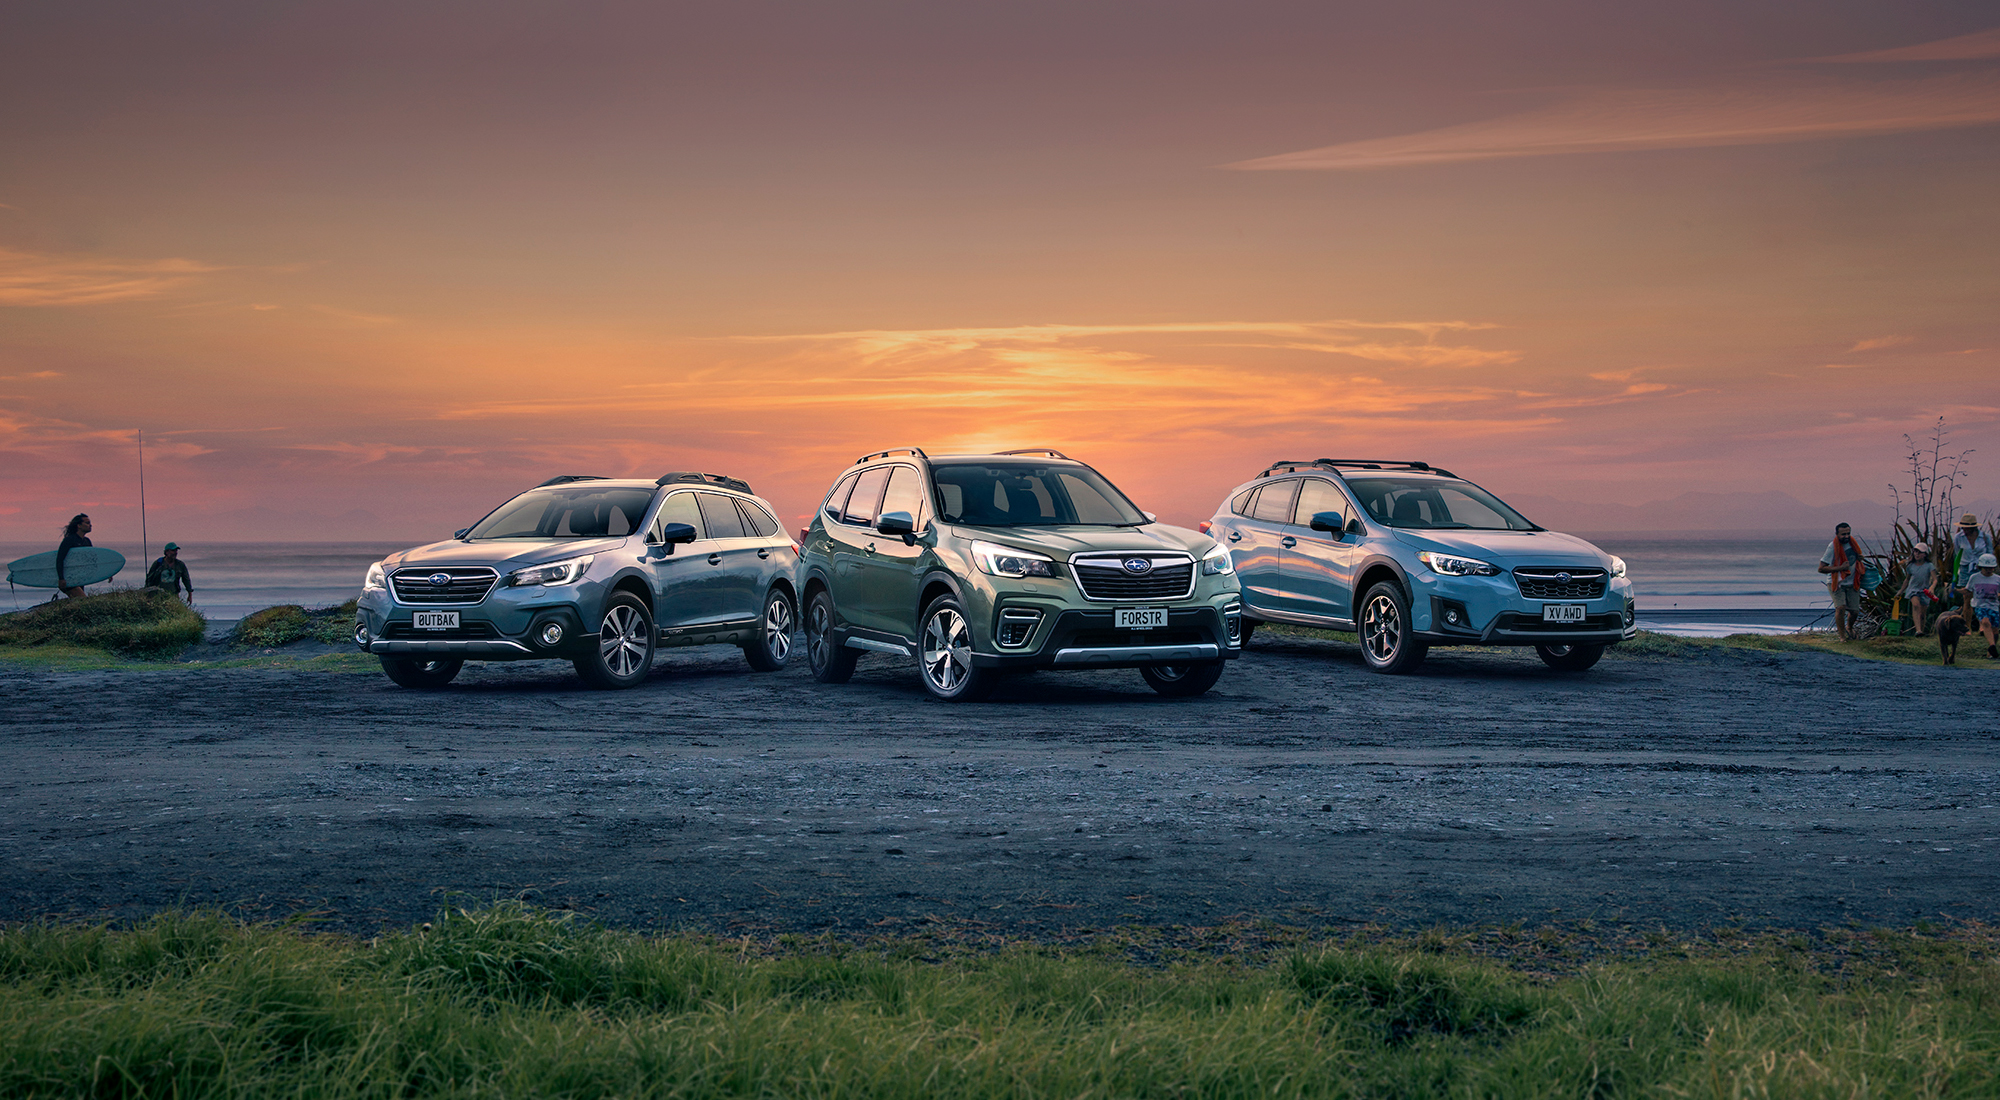 The Subaru SUV range